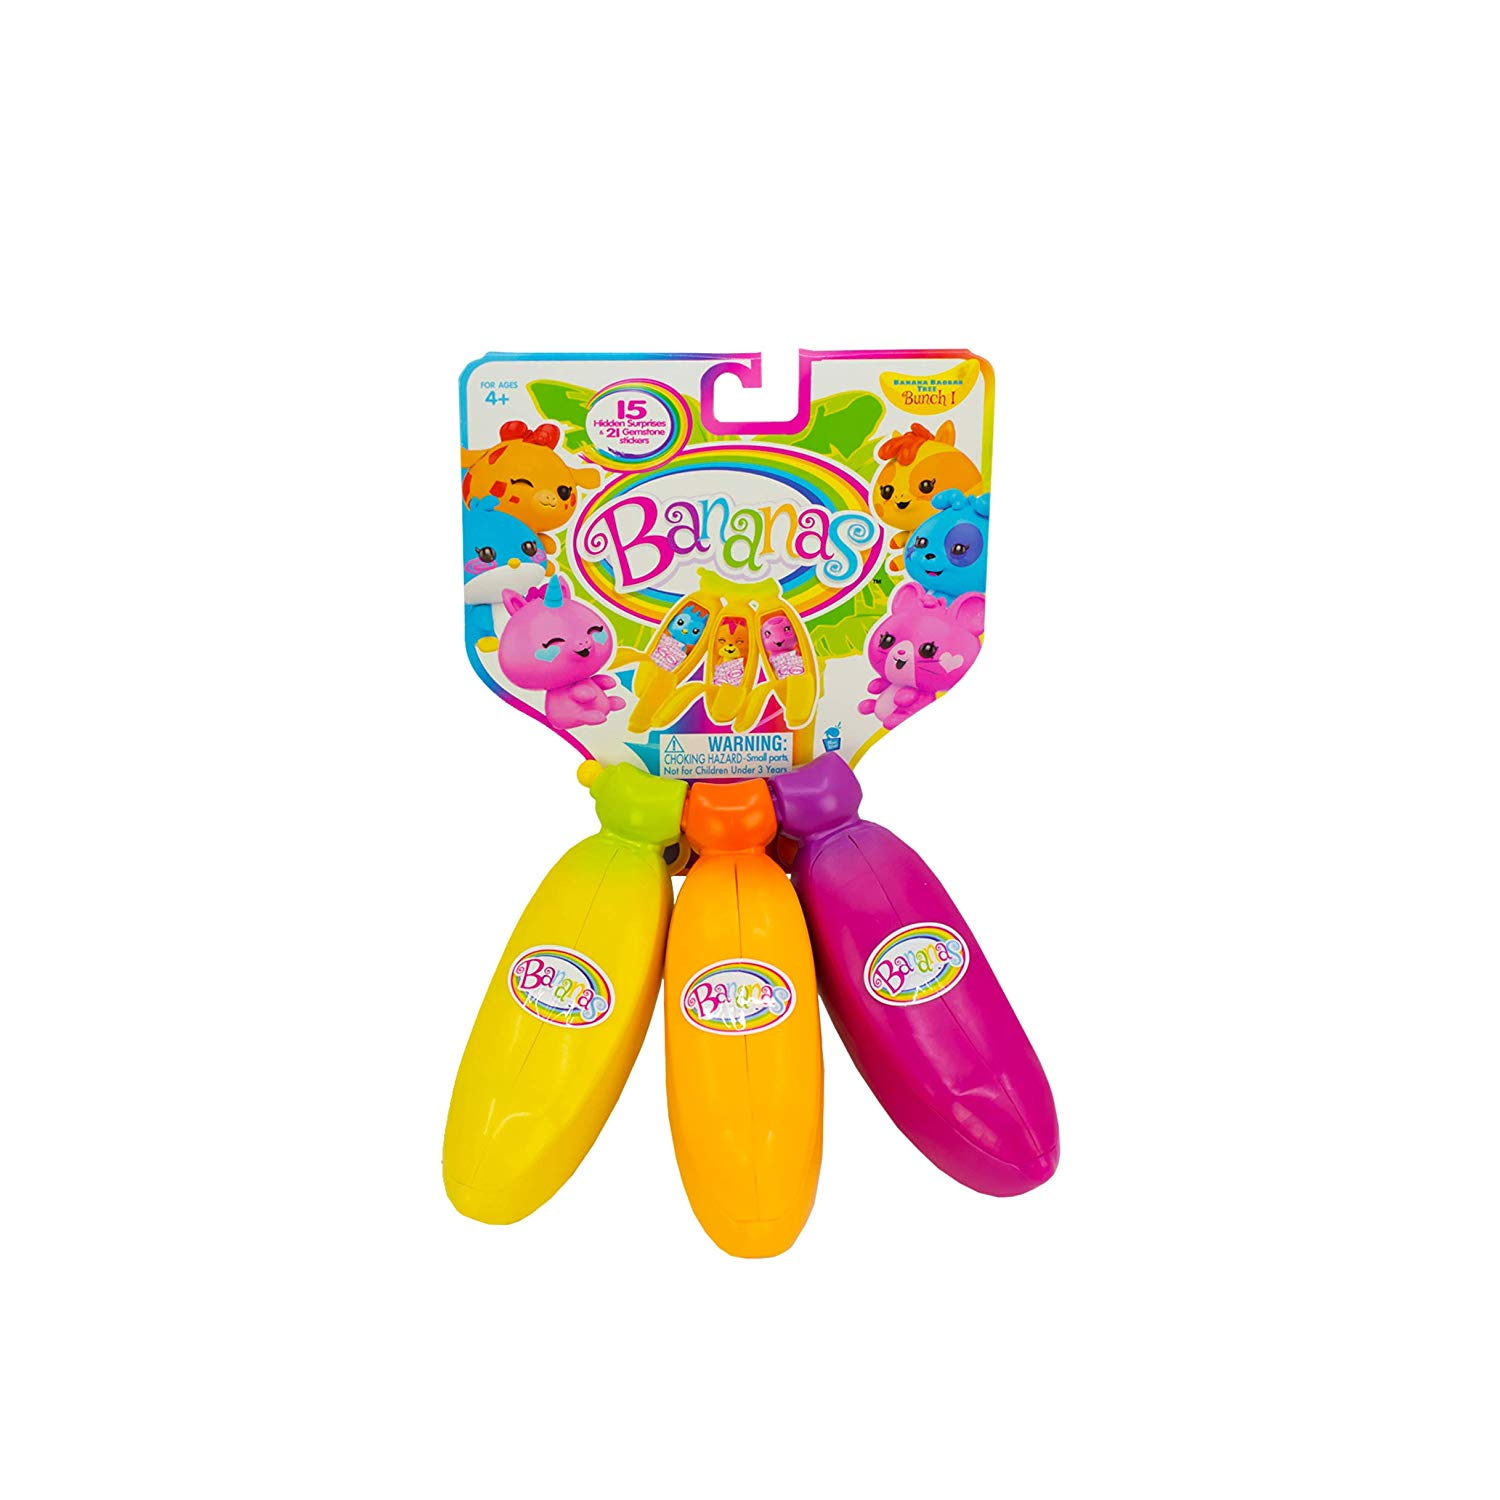 BANANAS 3 Pack Collectible Toy Image